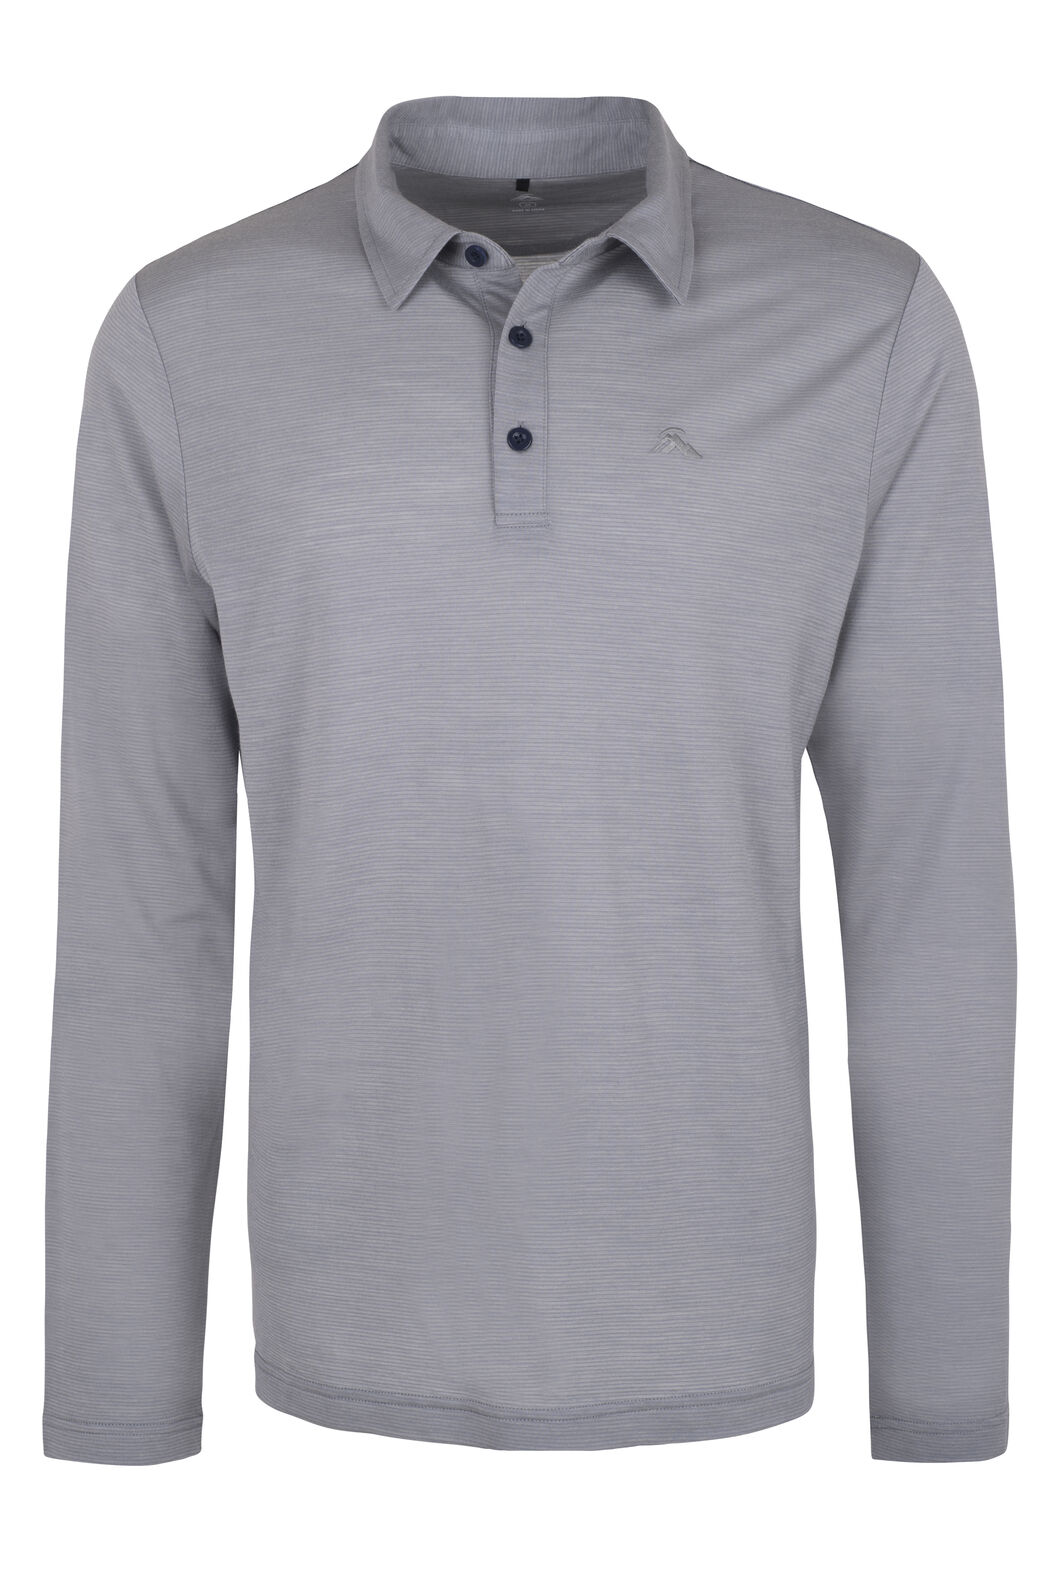 Macpac Merino Blend Long Sleeve Polo - Men's, Mid Grey, hi-res